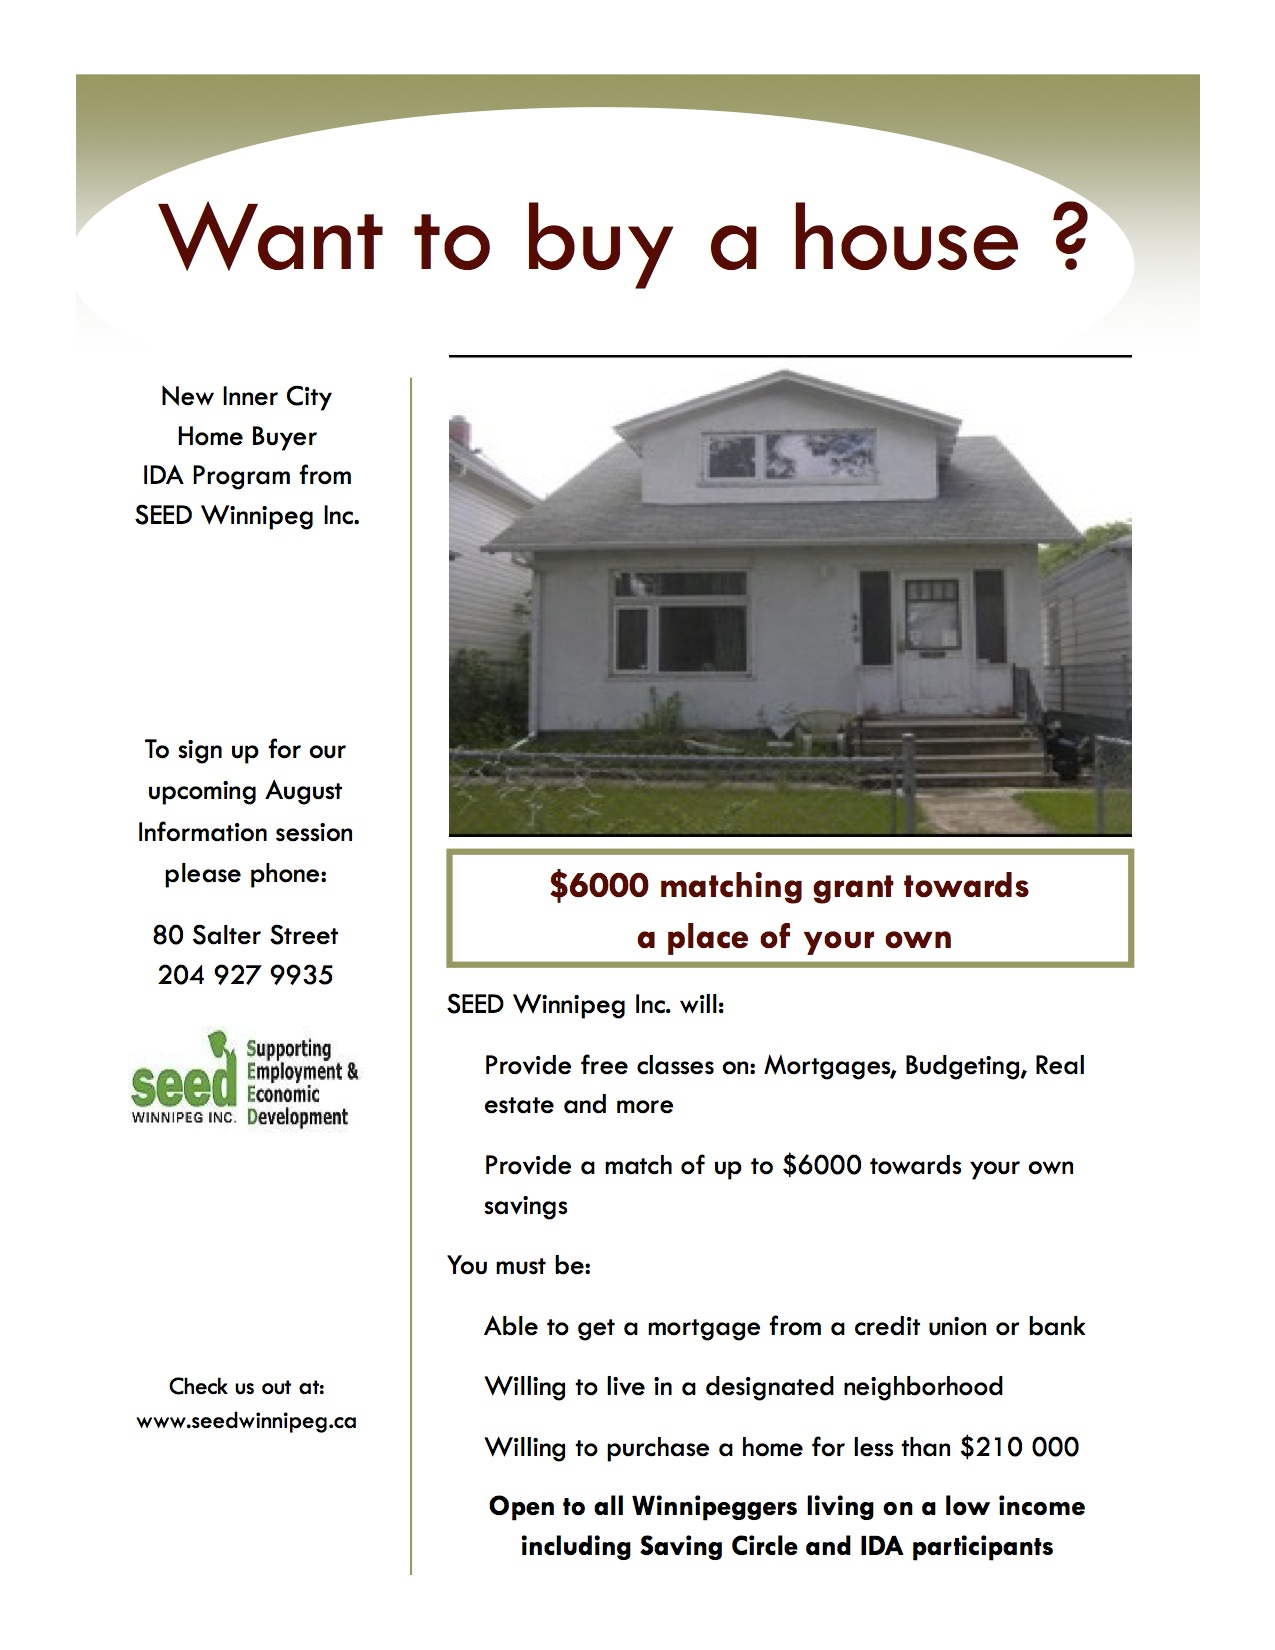 Want to buy a new home in Chalmers?